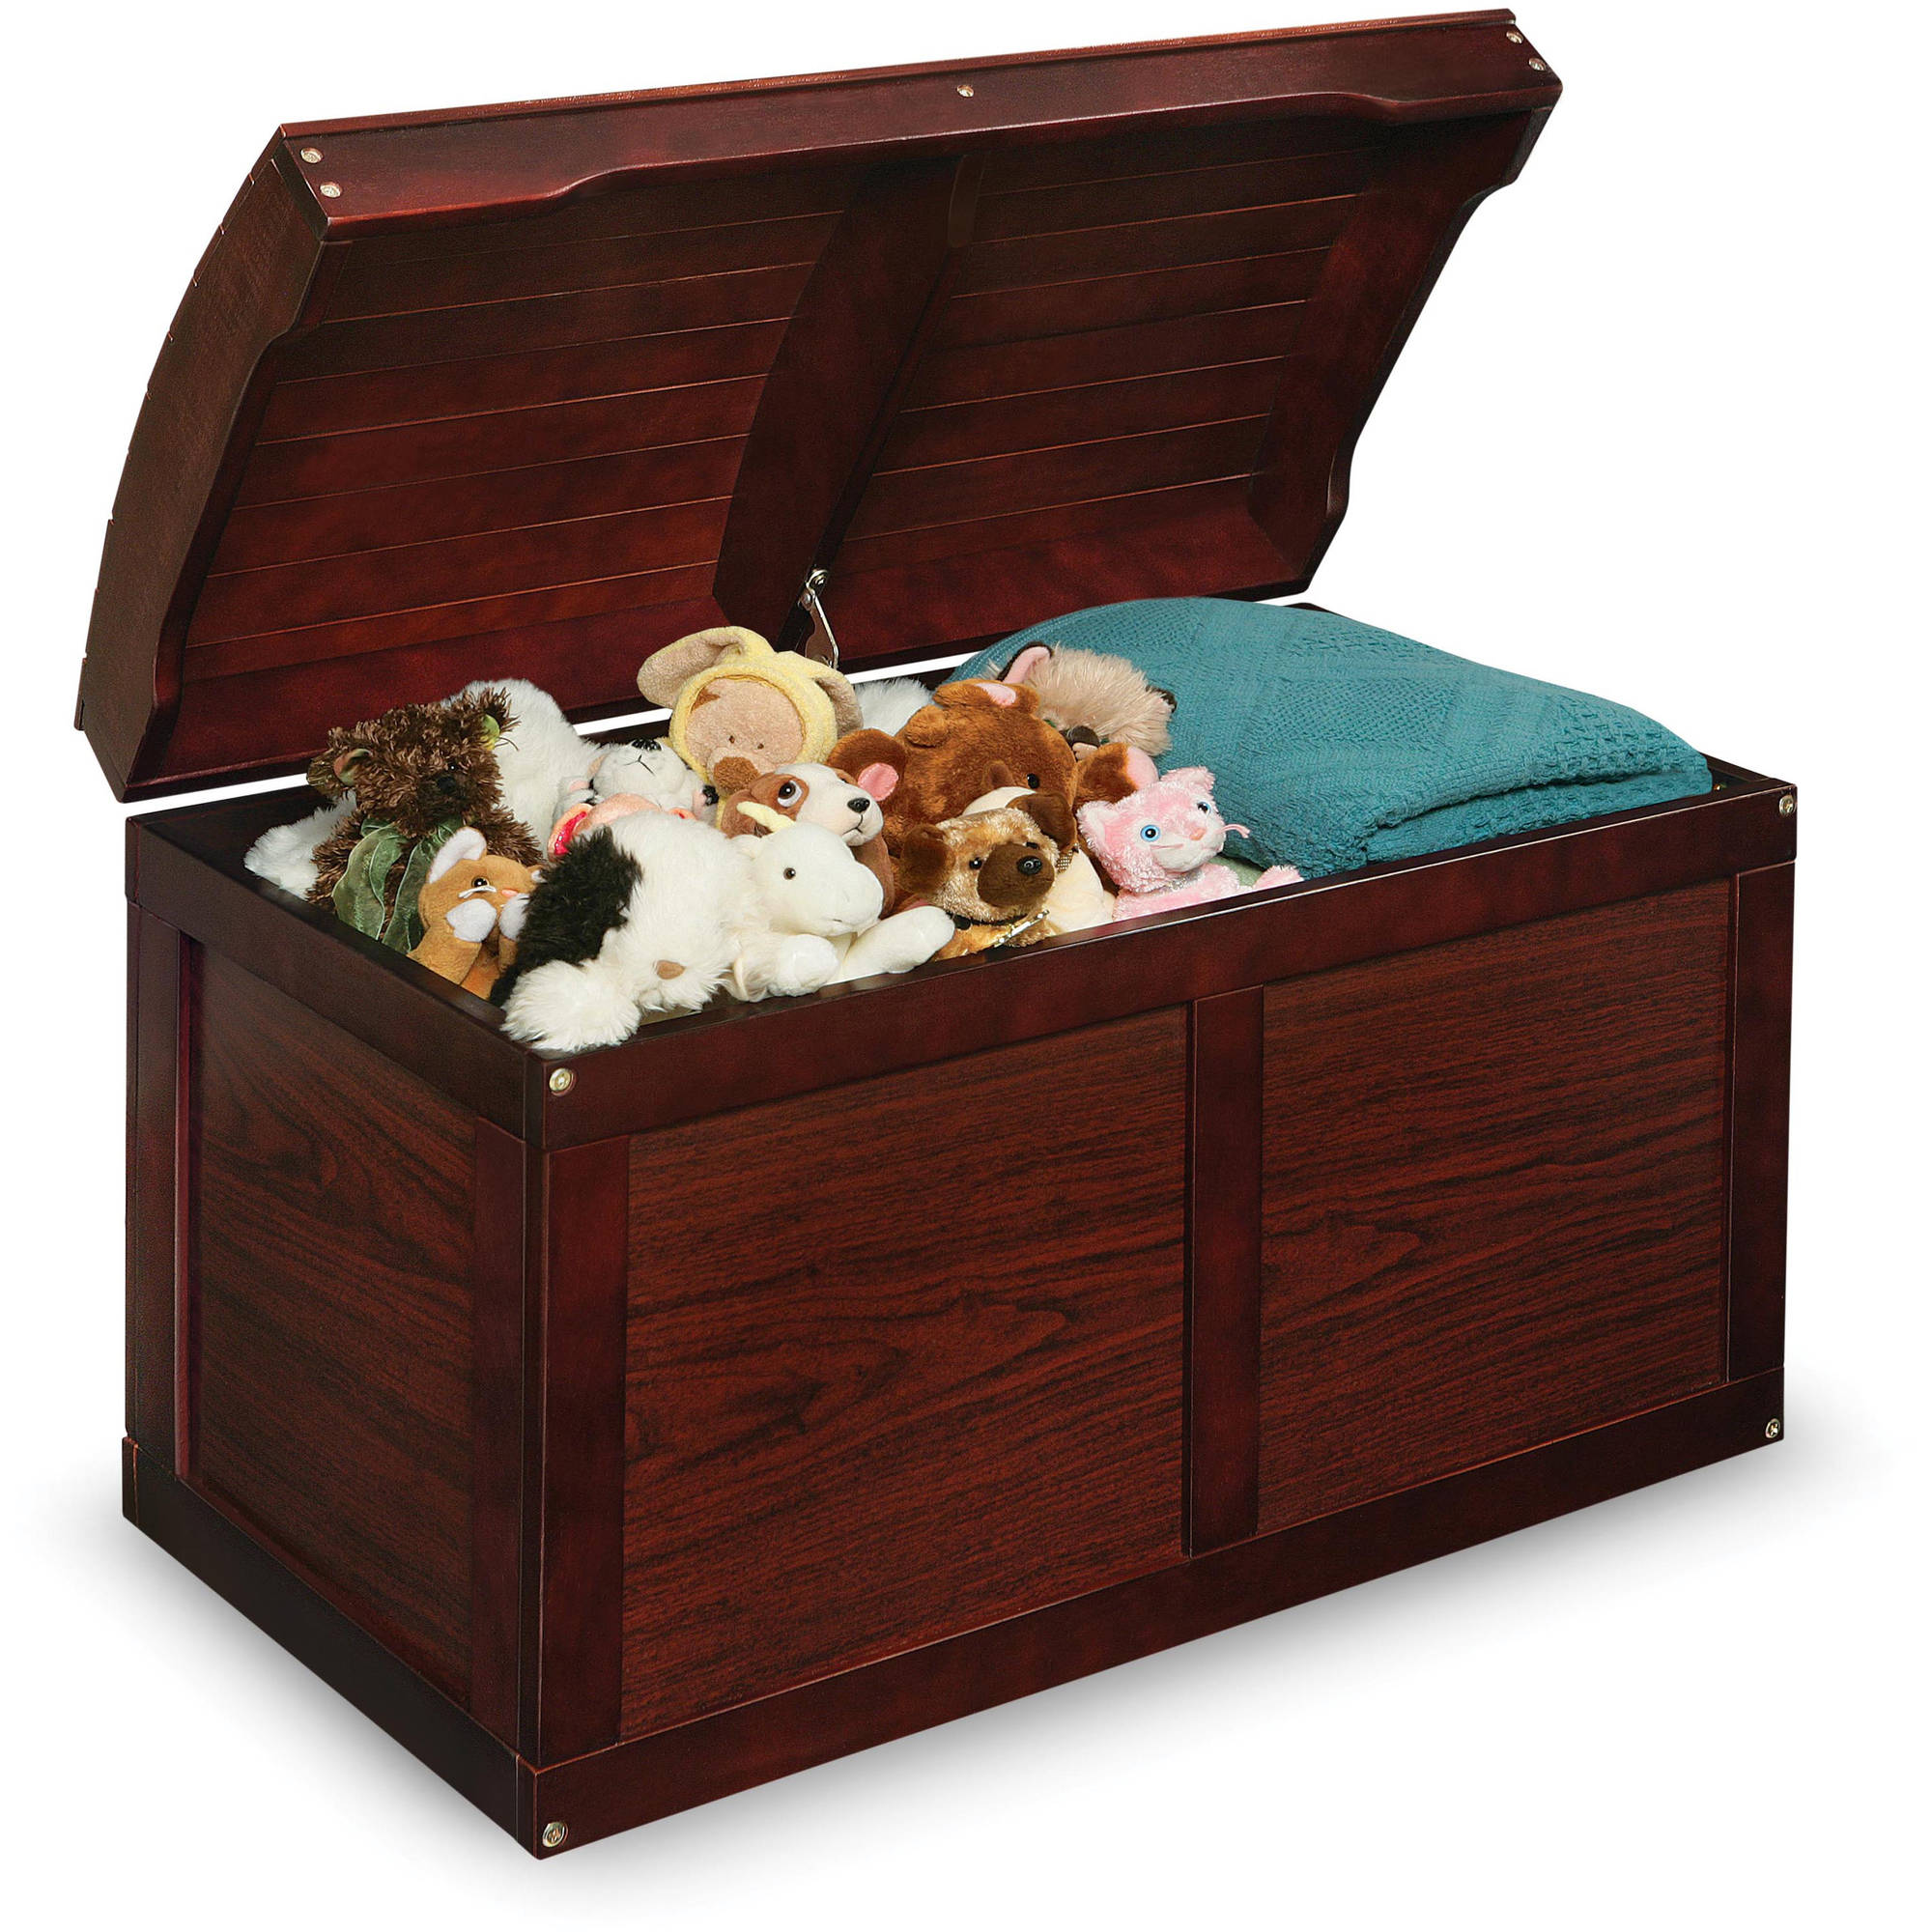 Badger Basket Barrel Top Toy Chest, Multiple Colors by Badger Basket